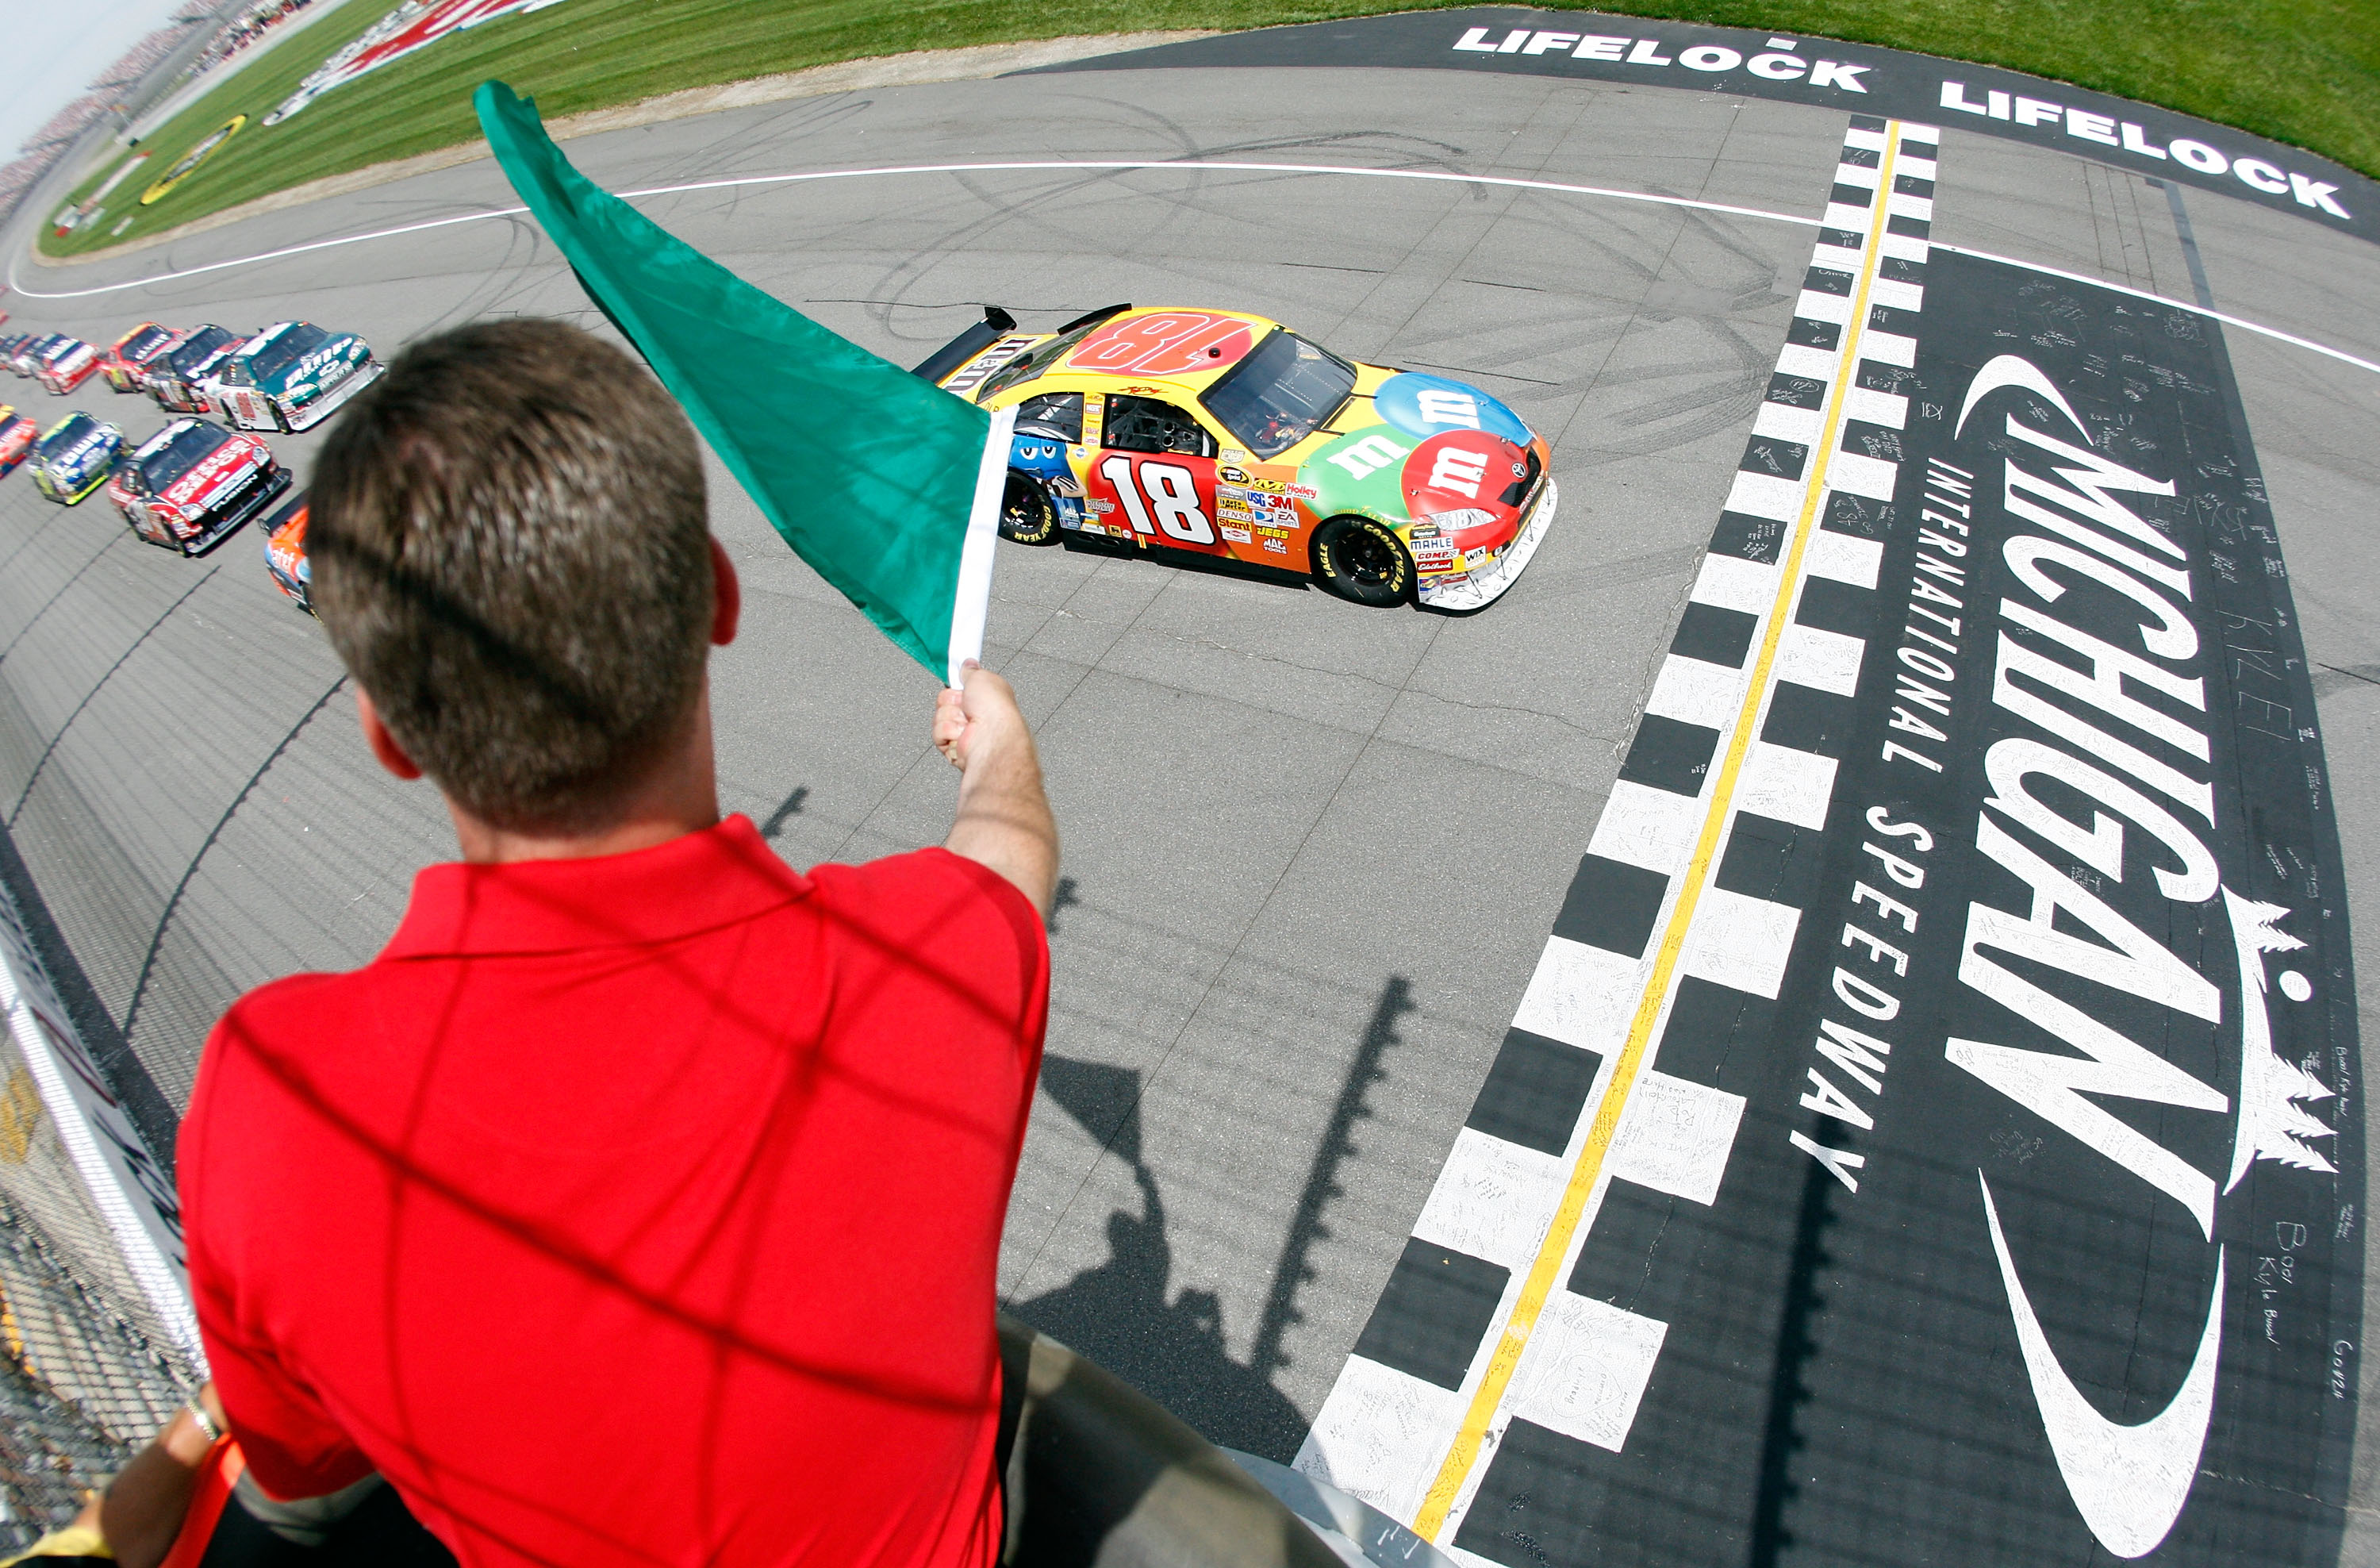 BROOKLYN, MI - JUNE 15:  Kyle Busch, driver of the #18 M&M's Toyota, crosses the start line at the green flag during the NASCAR Sprint Cup Series Lifelock 400 at the Michigan International Speedway on June 15, 2008 in Brooklyn, Michigan.  (Photo by Chris